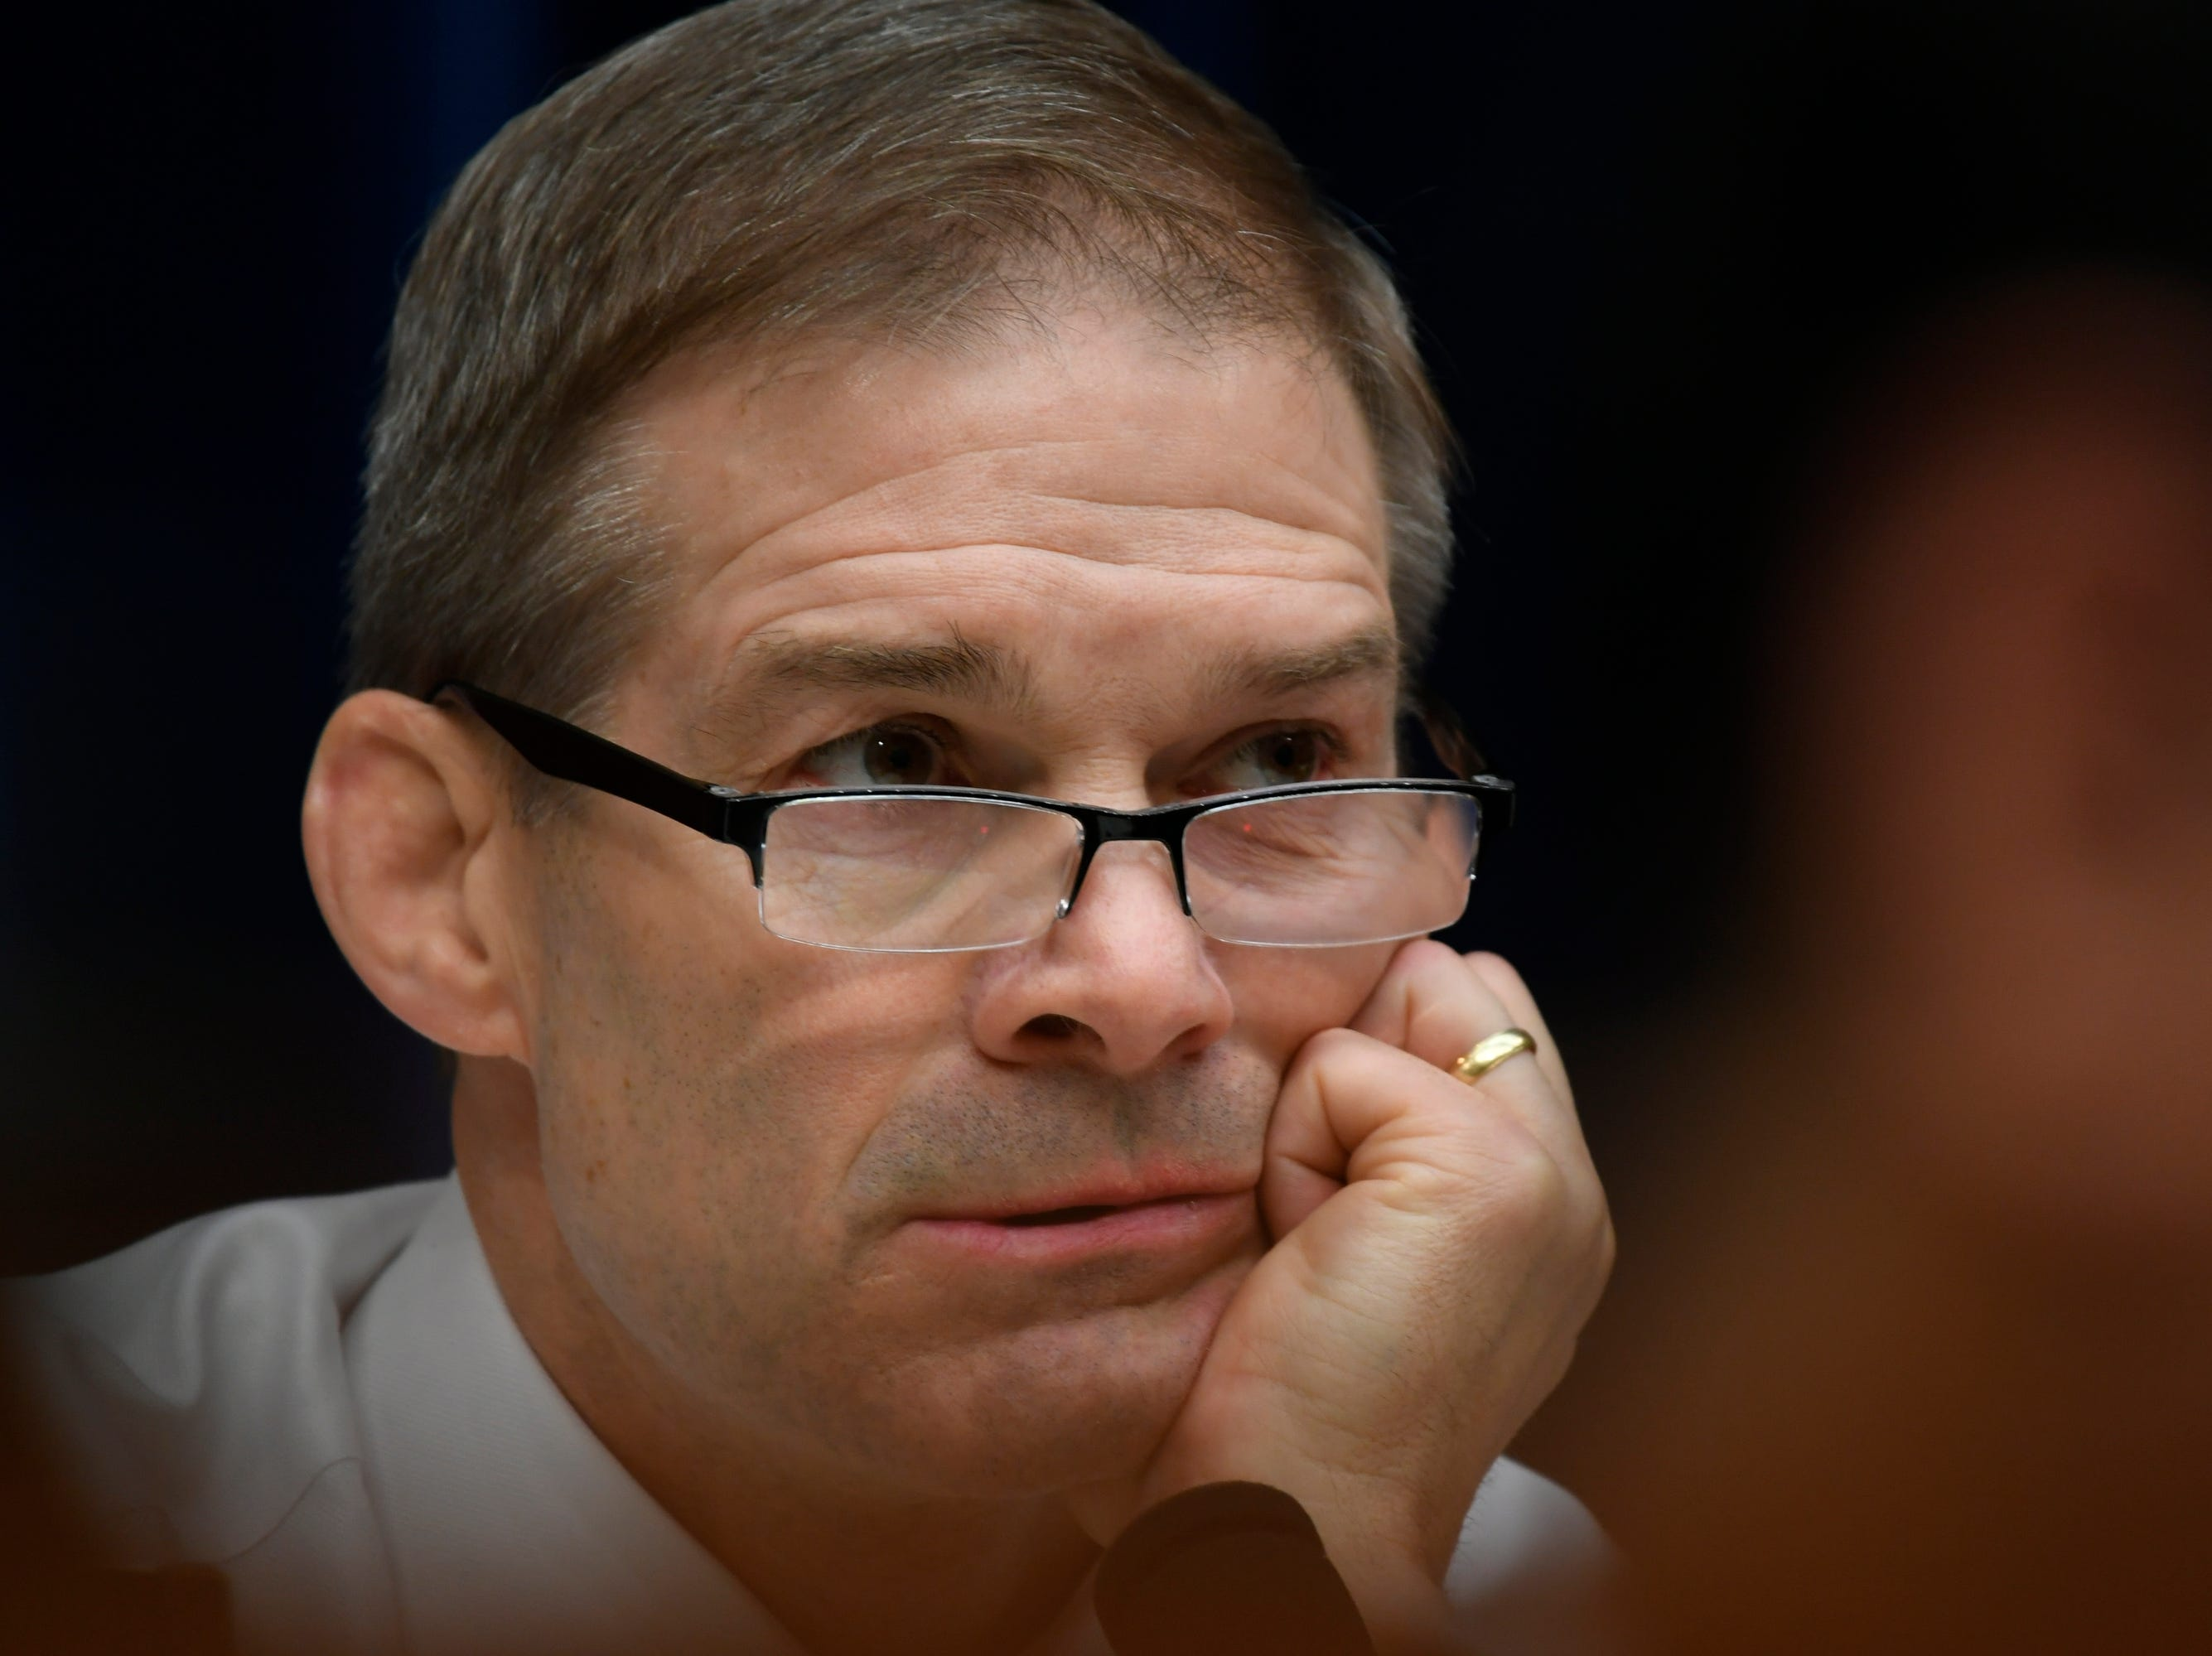 House Oversight and Reform Committee Ranking Member Jim Jordan, R-Ohio listens at the Michael Cohen hearing. Michael Cohen, President Donald Trump's longtime personal attorney, testifies before the House Committee on Oversight and Reform on Feb. 27, 2019 in Washington.